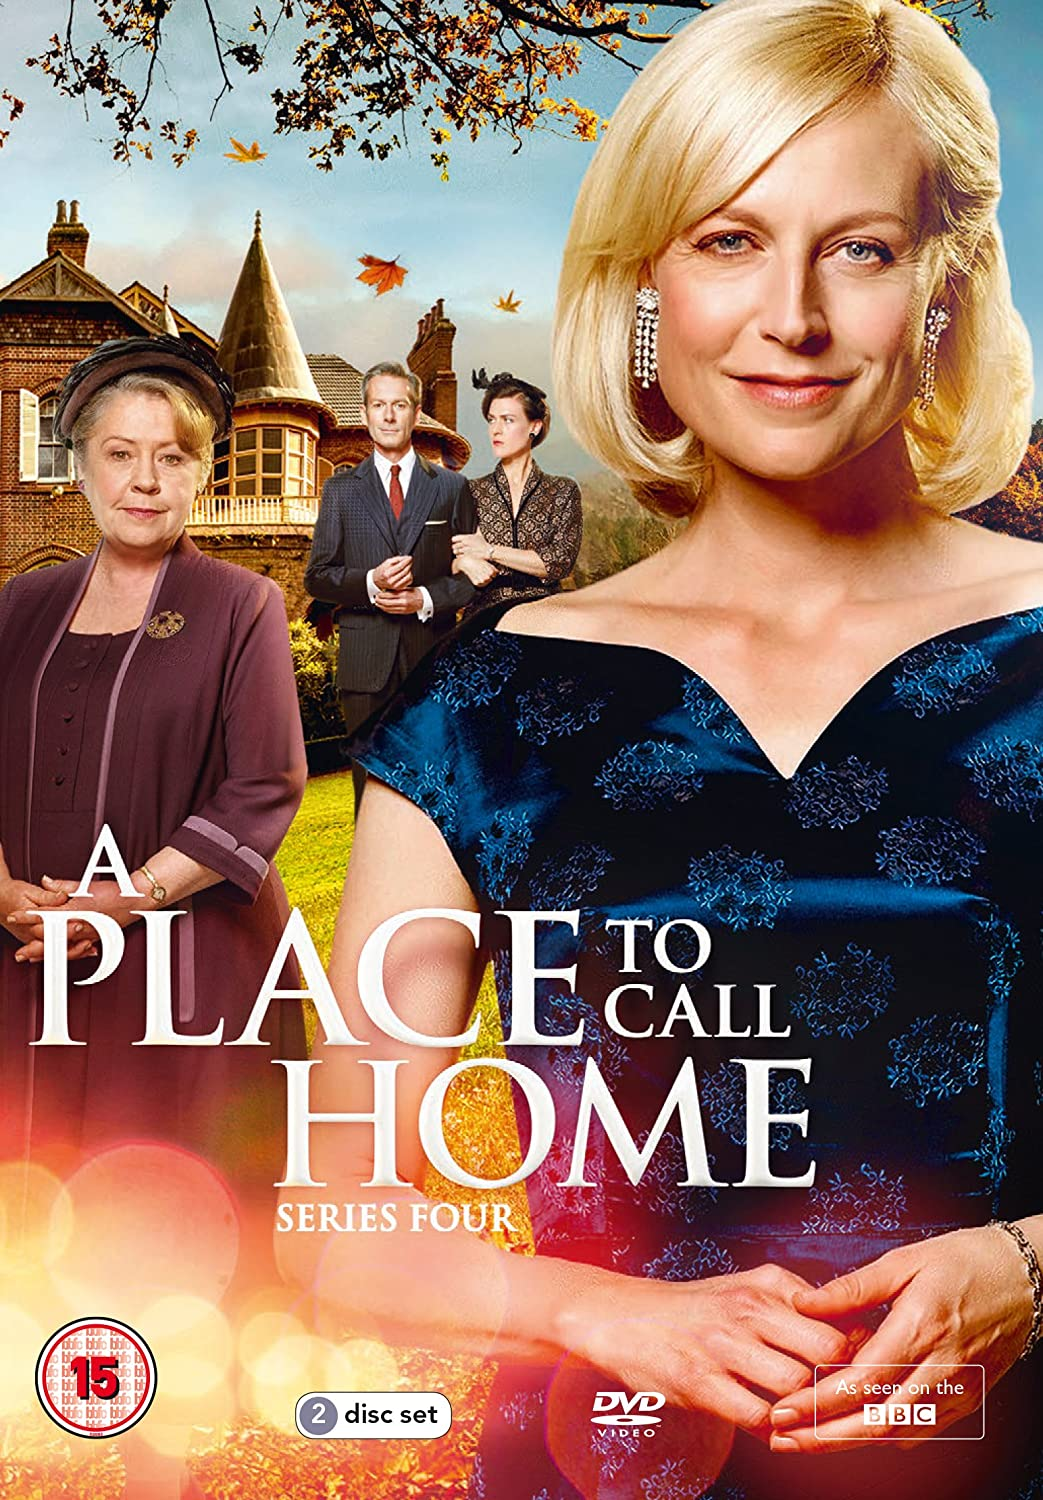 A Place to Call Home: Series 4